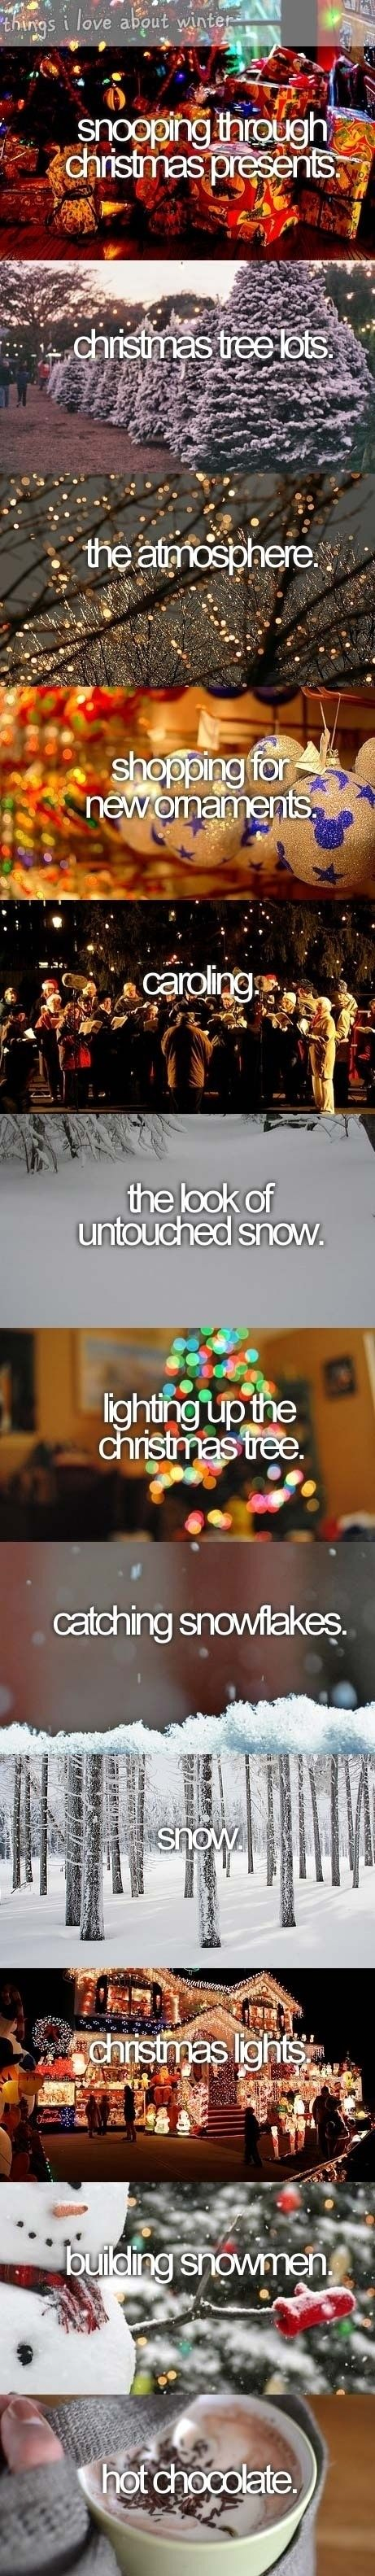 Things I miss about Christmas.